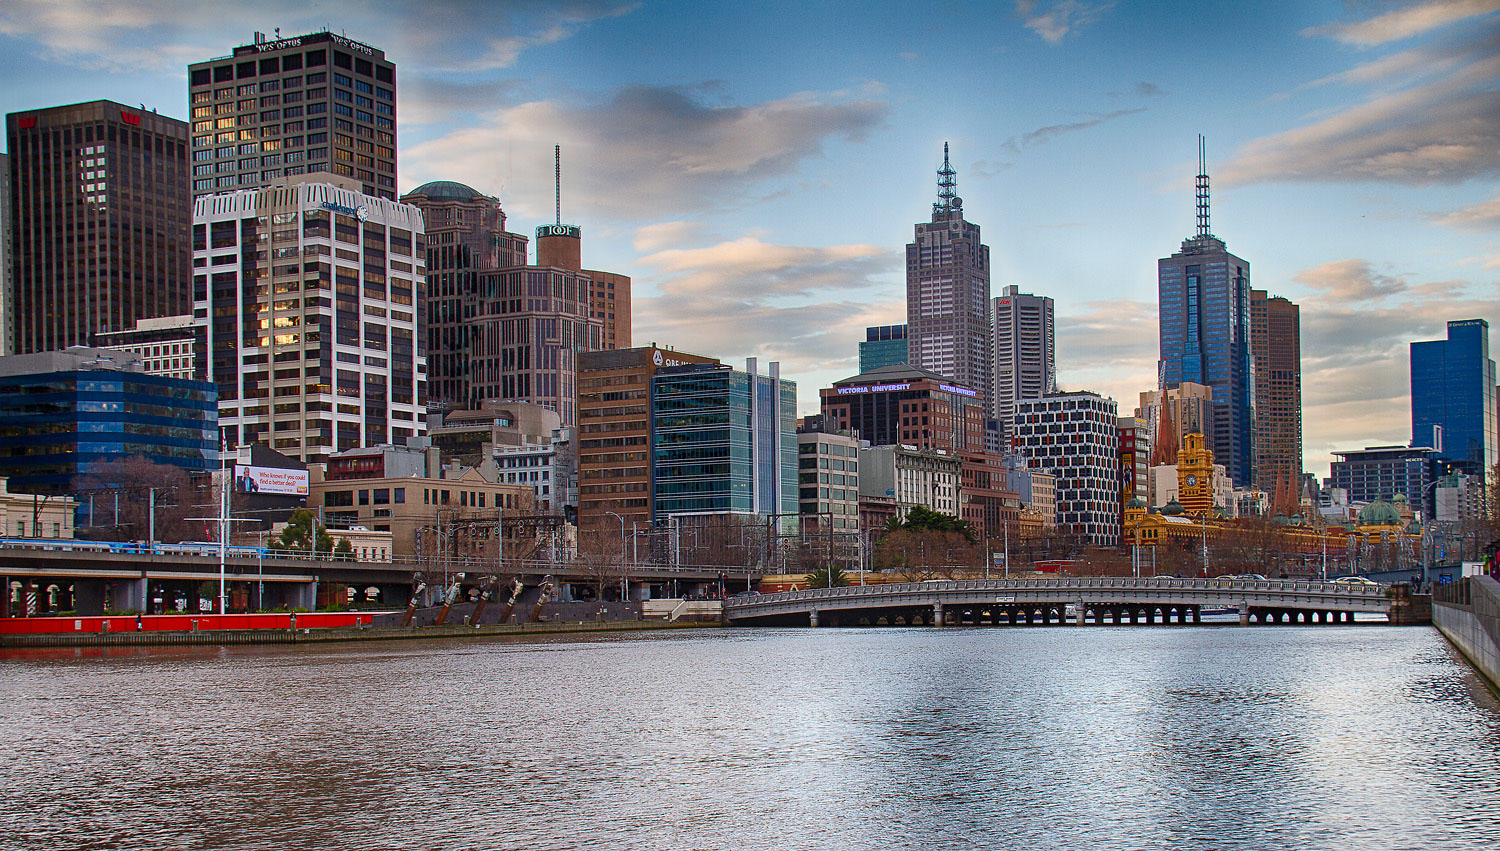 10 Issues To Do in Melbourne, Australia [with Suggested Tours]